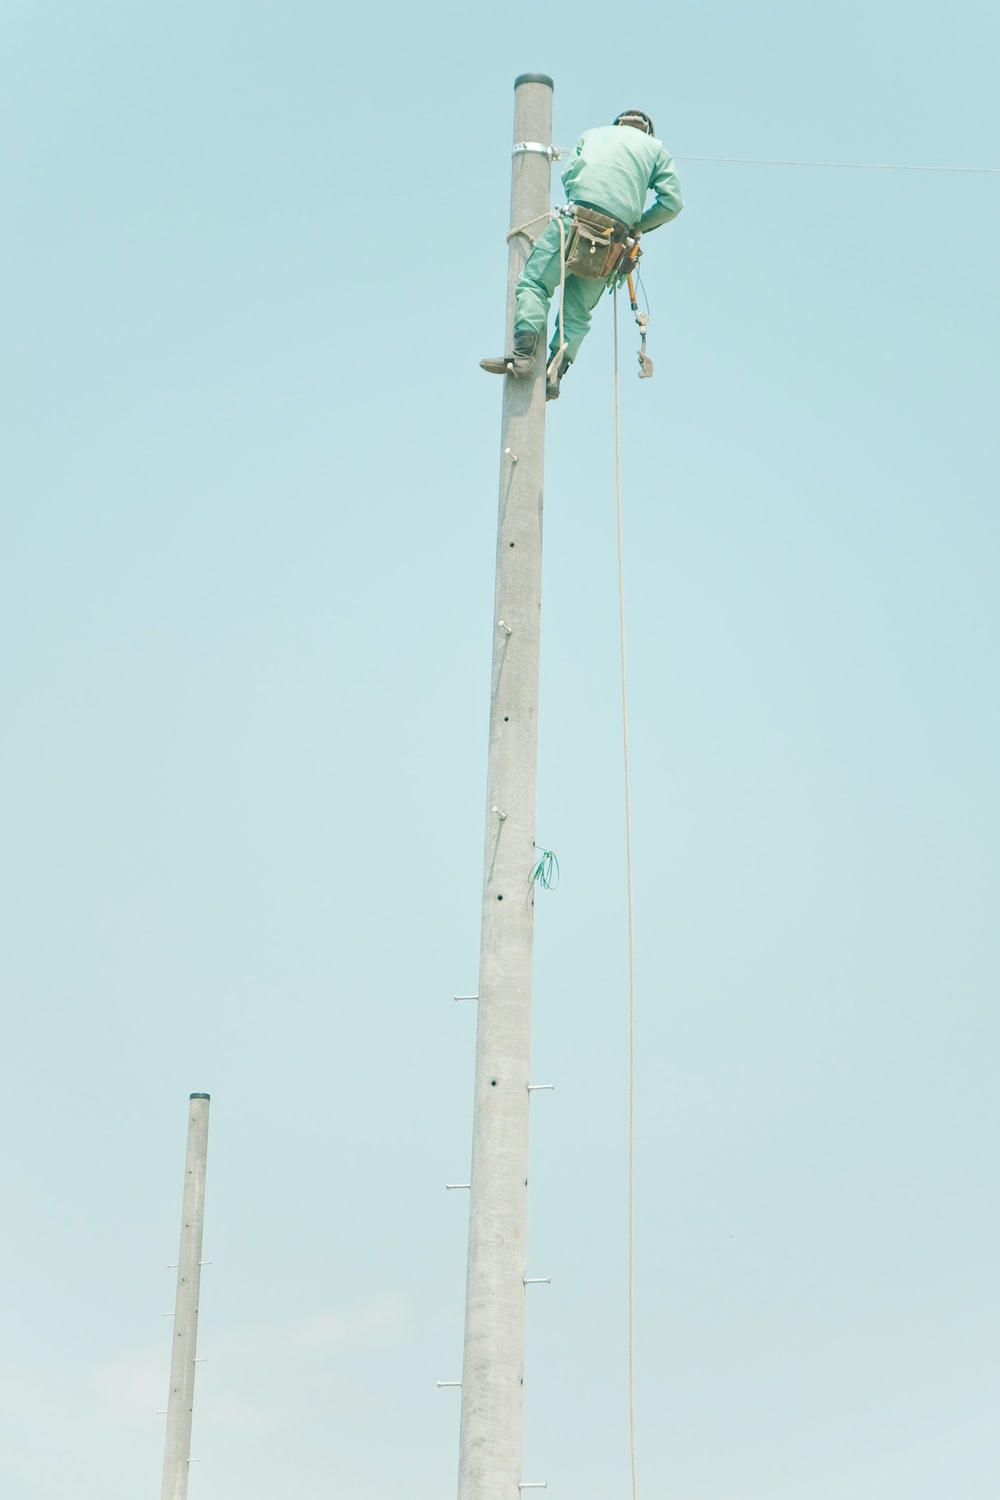 man in blue suit on top of the electic post